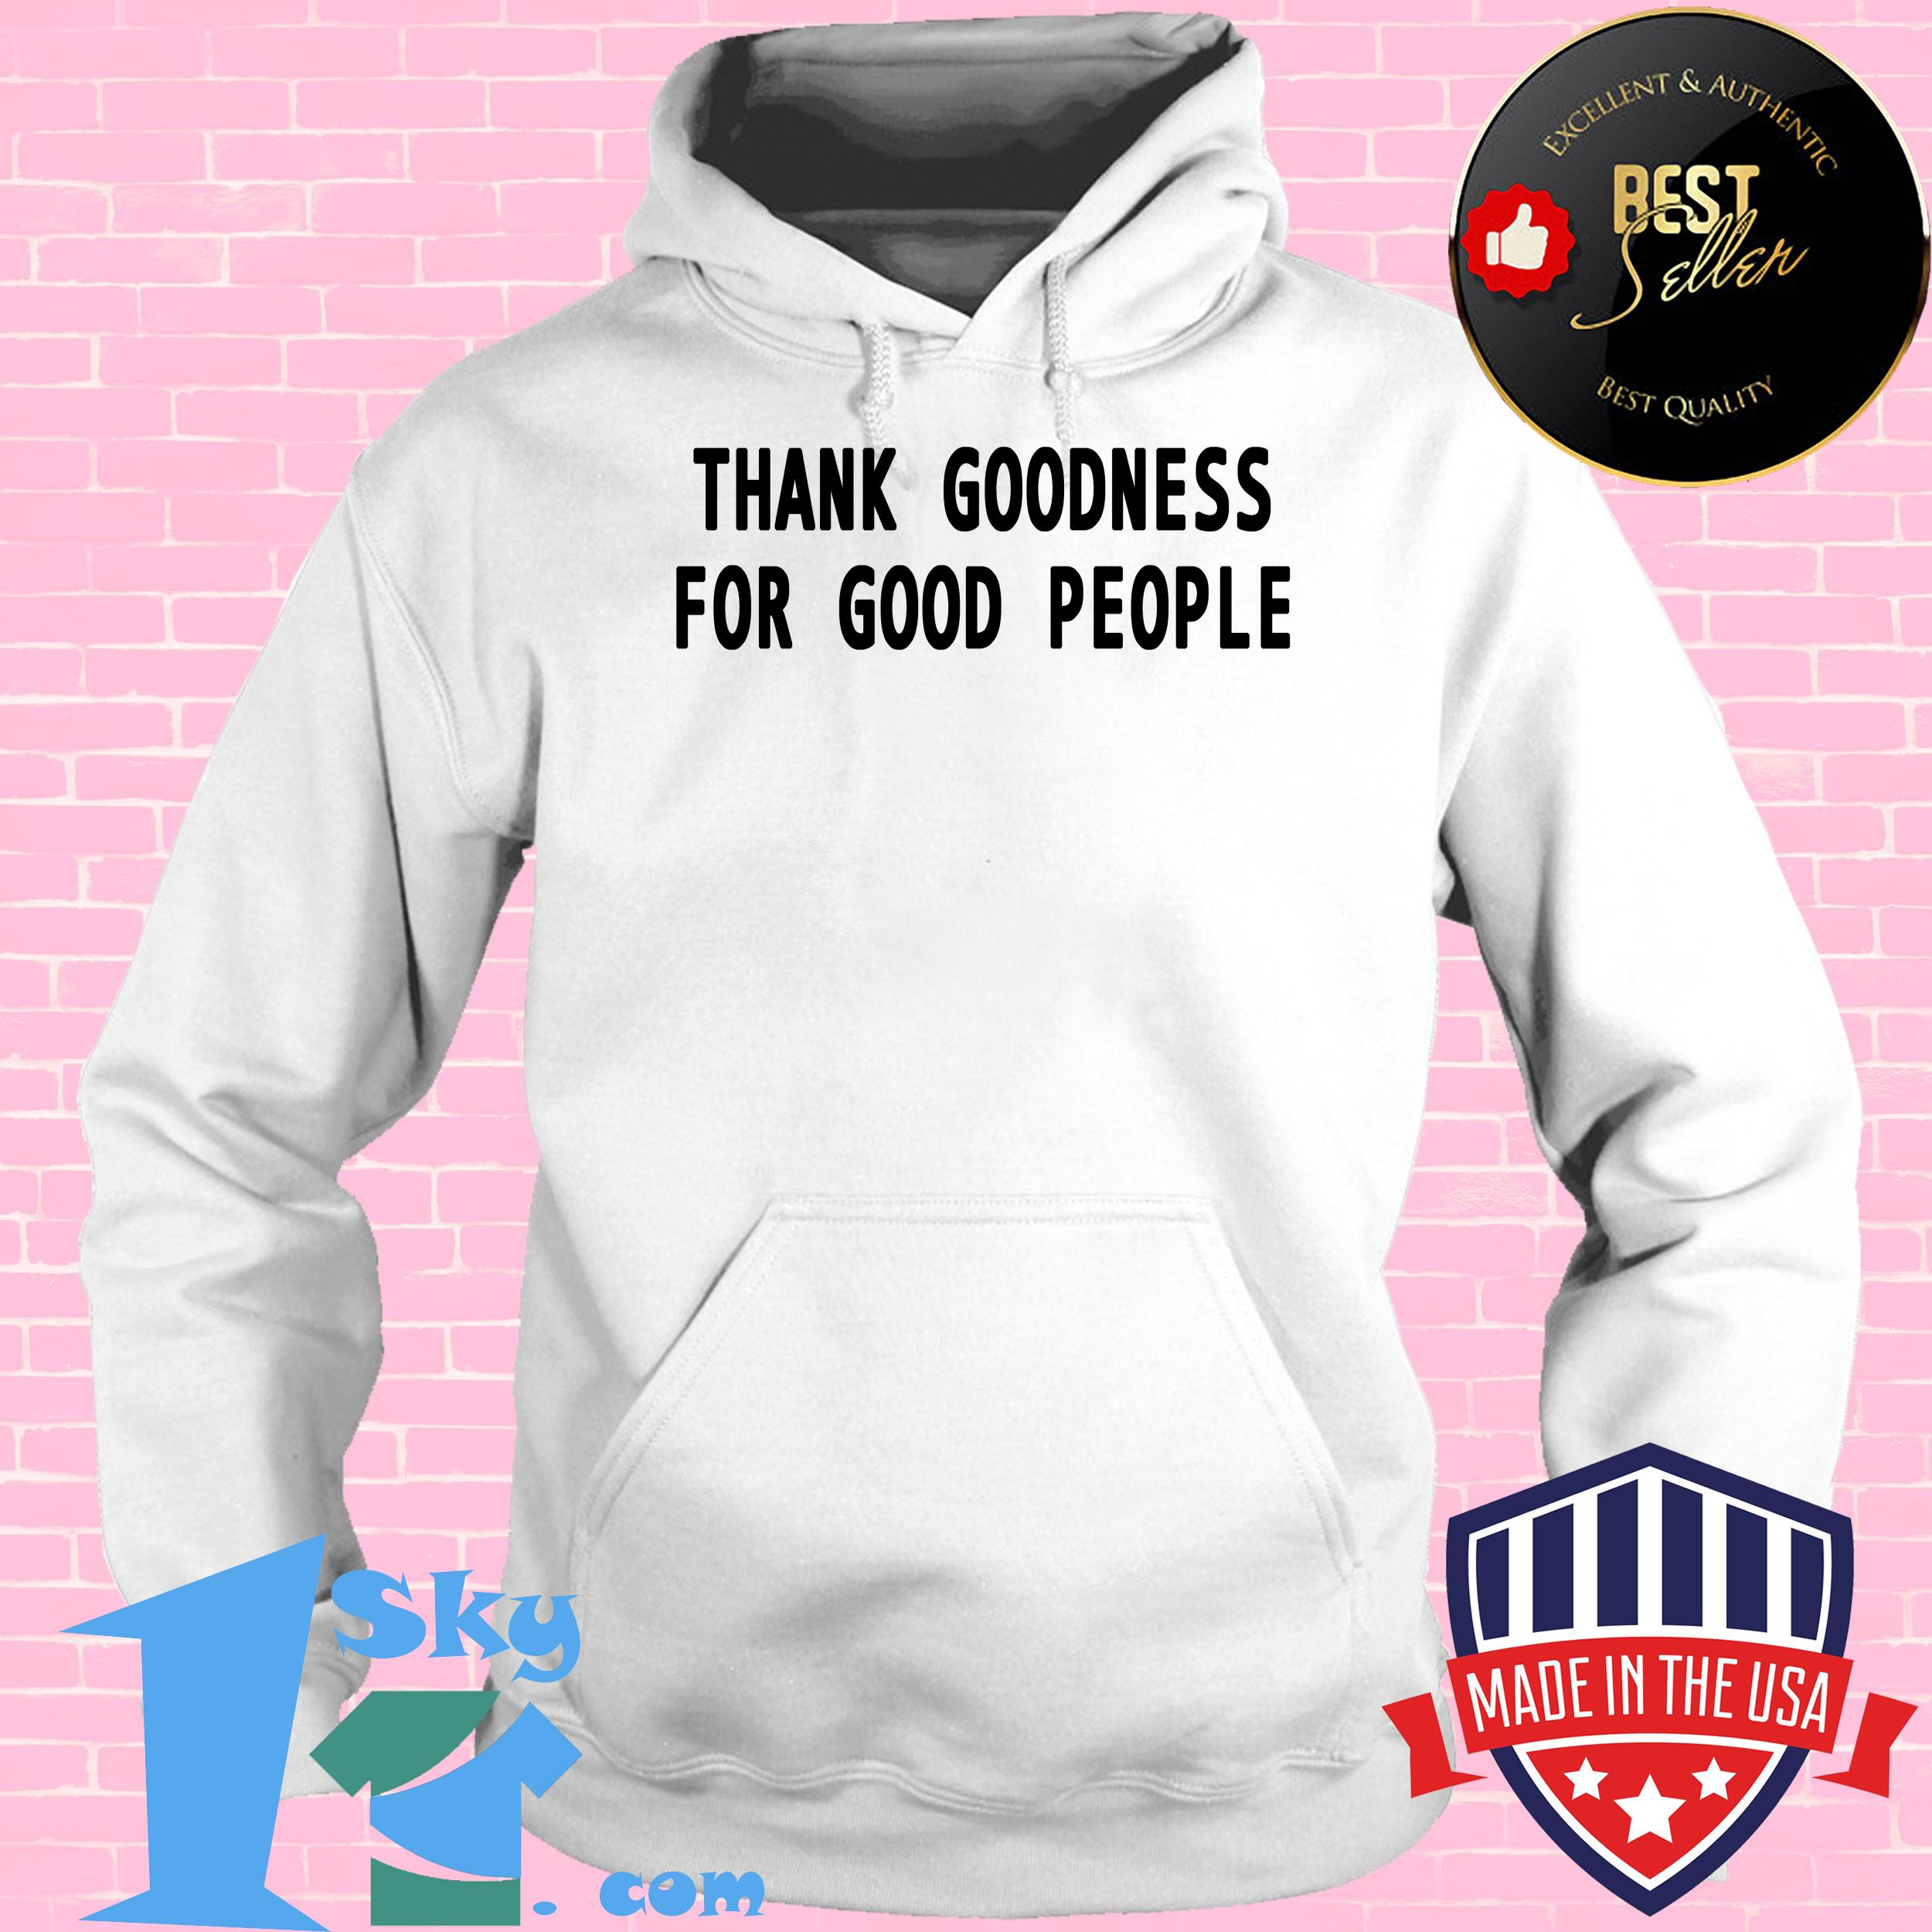 tank goodness for good people hoodie - Thank Goodness For Good People shirt